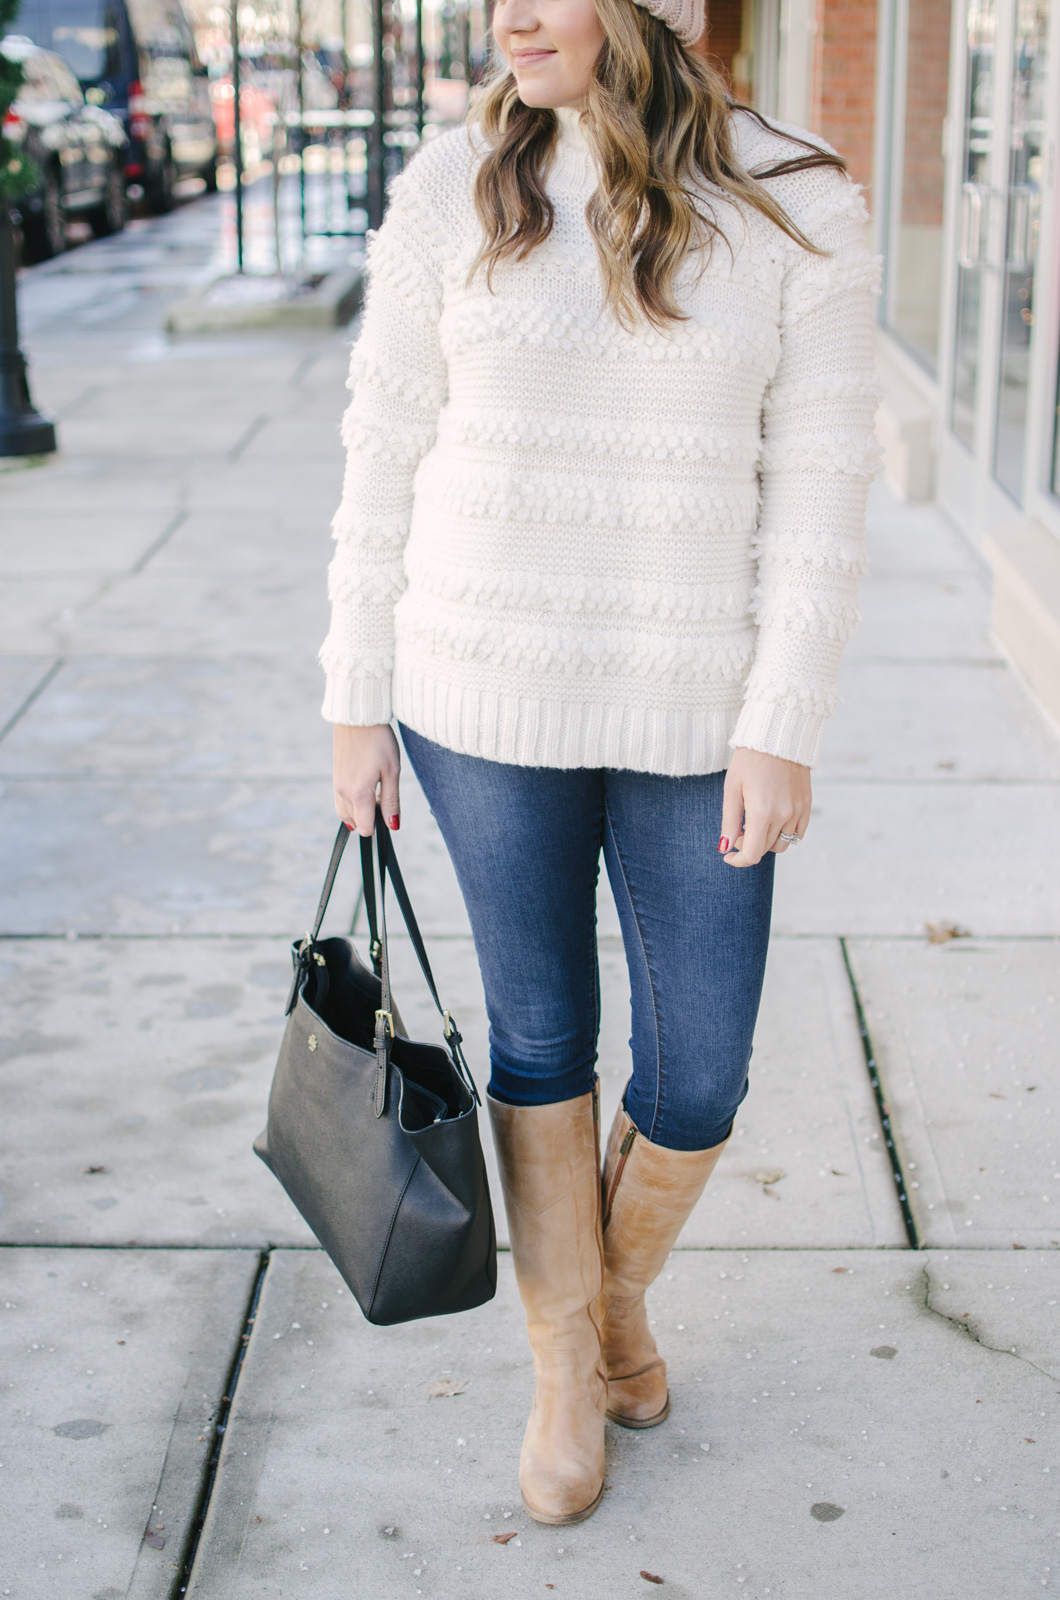 cream sweater outfit - cute oversized sweater outfit | Get all the outfit details and see more cute Winter outfits at bylaurenm.com!